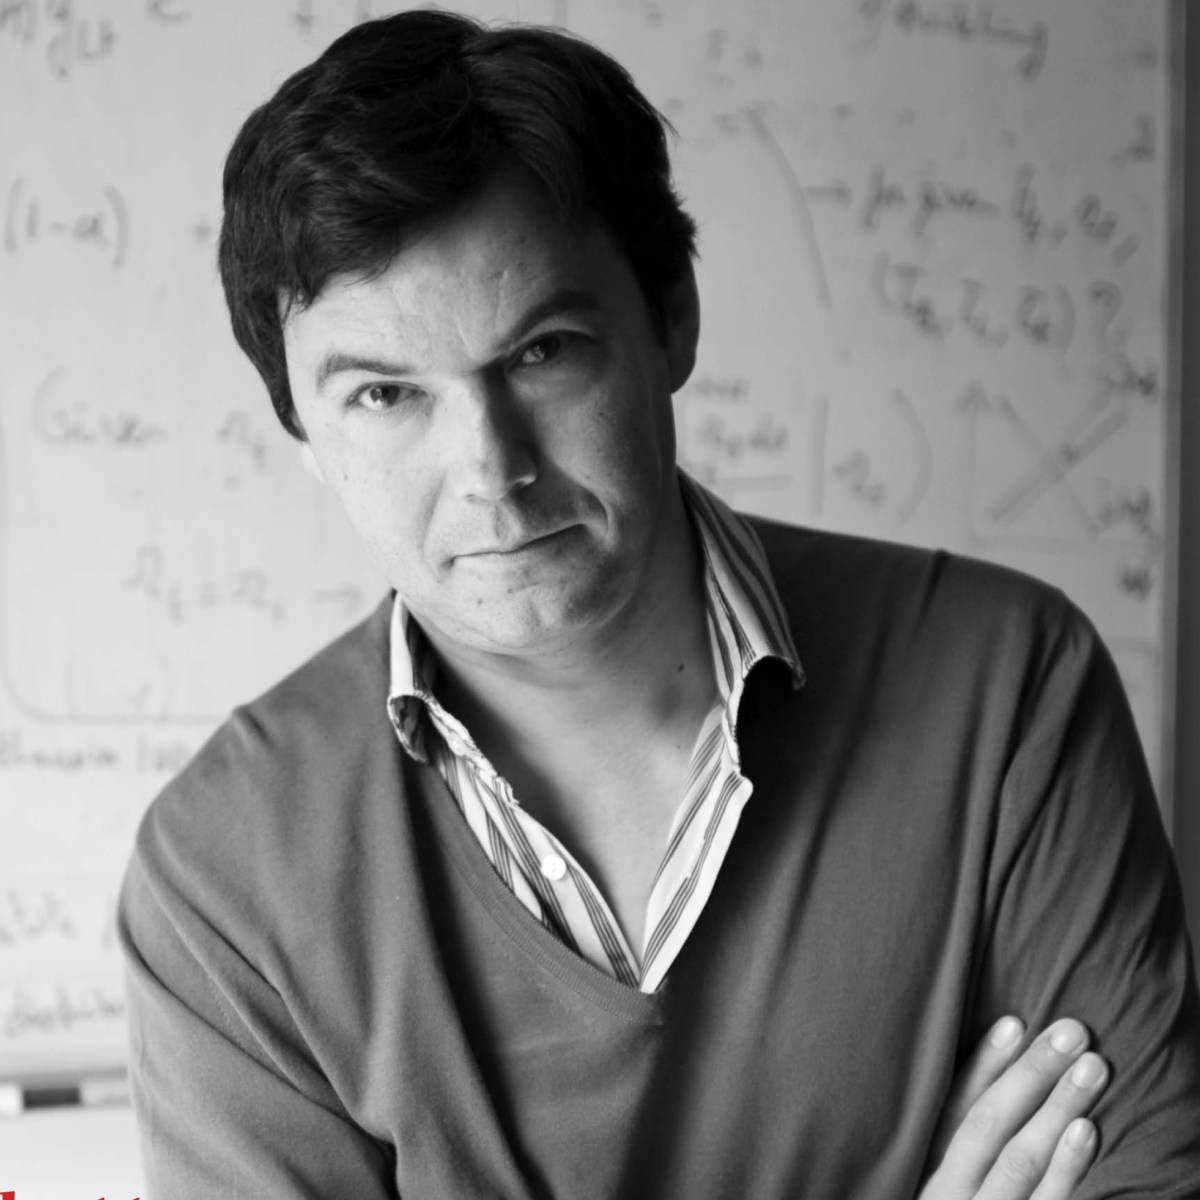 UCIDE 4/6 - Thomas Piketty